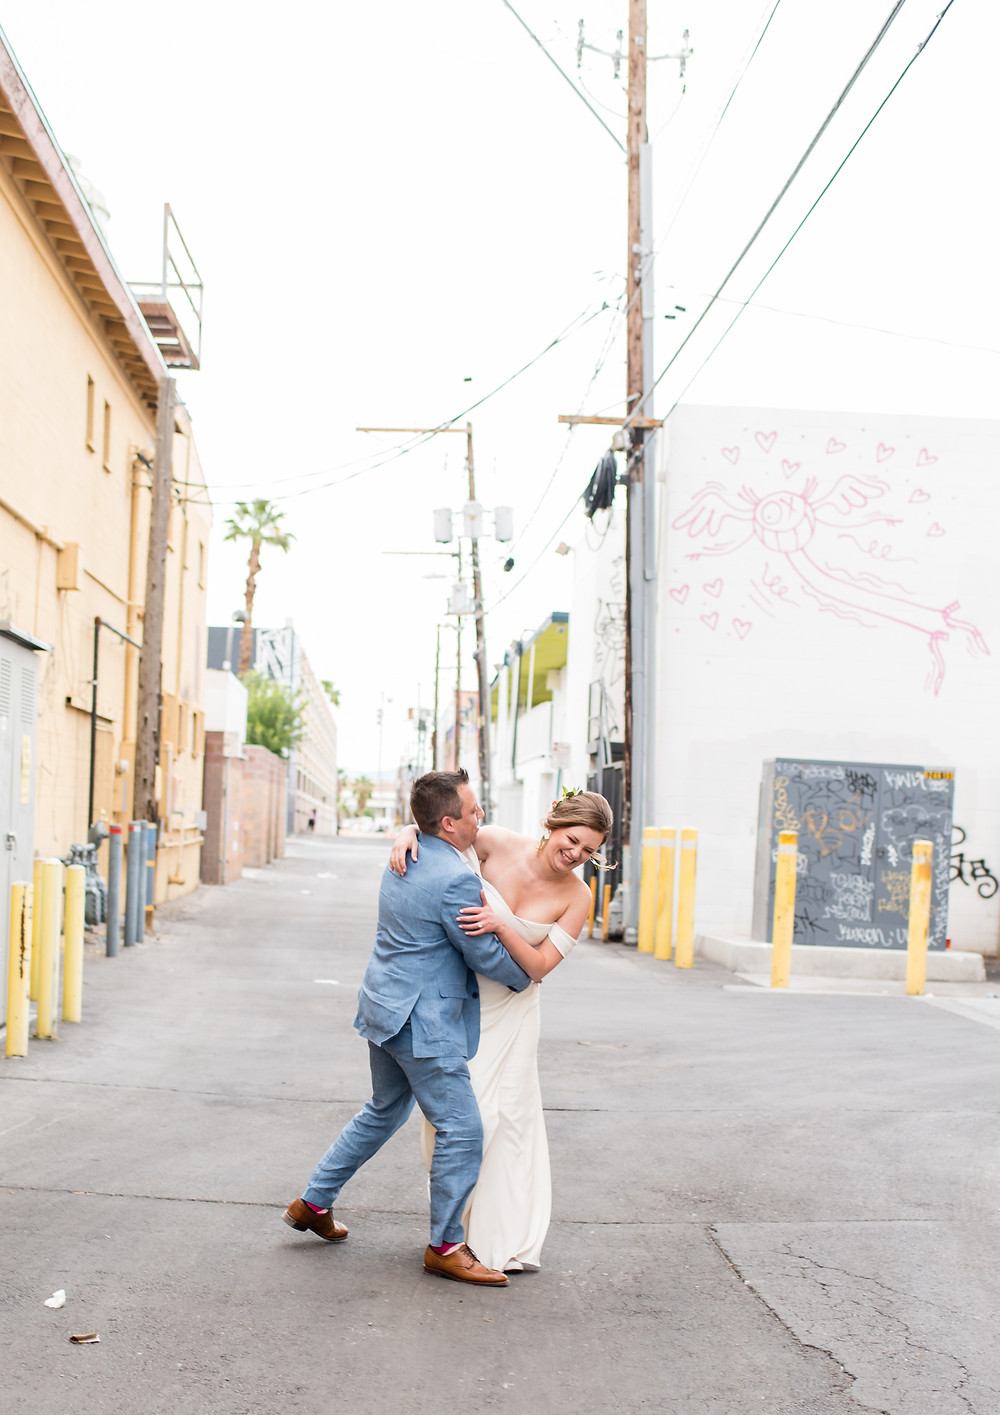 las vegas, vegas wedding, wedding, las vegas photographer, destination wedding, elopement, downtown art mural, art mural, neon, portraits, bride and groom, photography, just married, vegas weddings